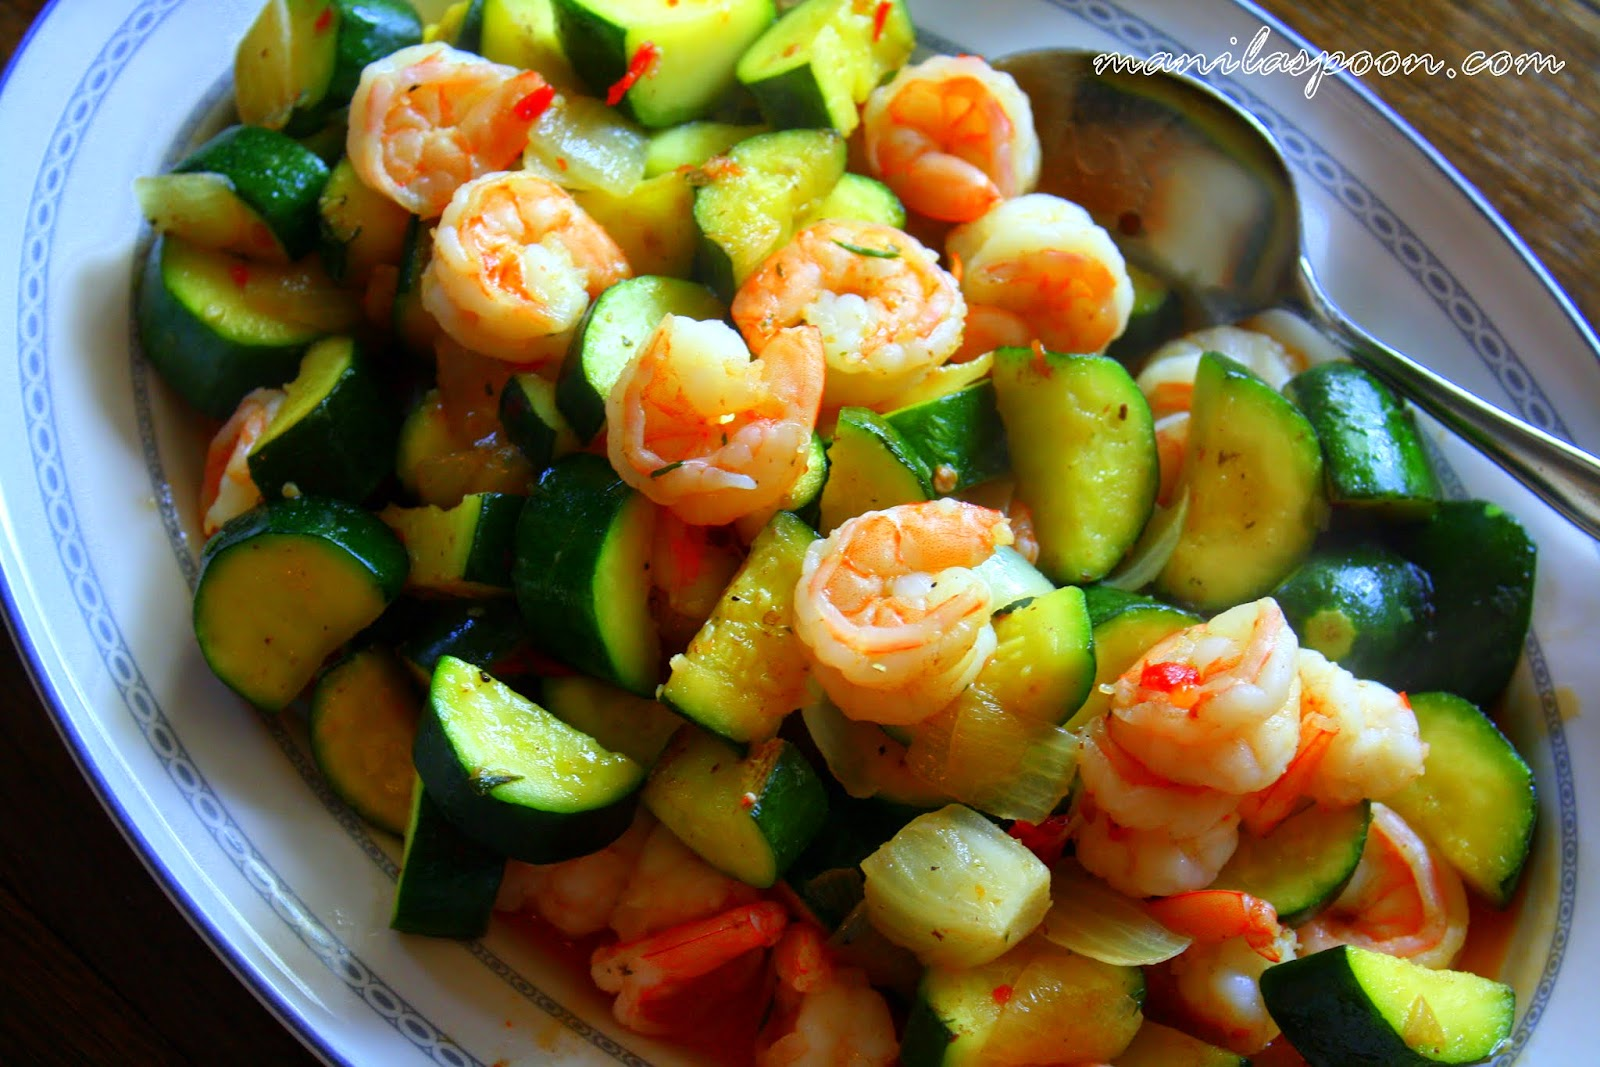 ... and SPICY SHRIMP and ZUCCHINI STIR-FRY! Quick and easy deliciousness